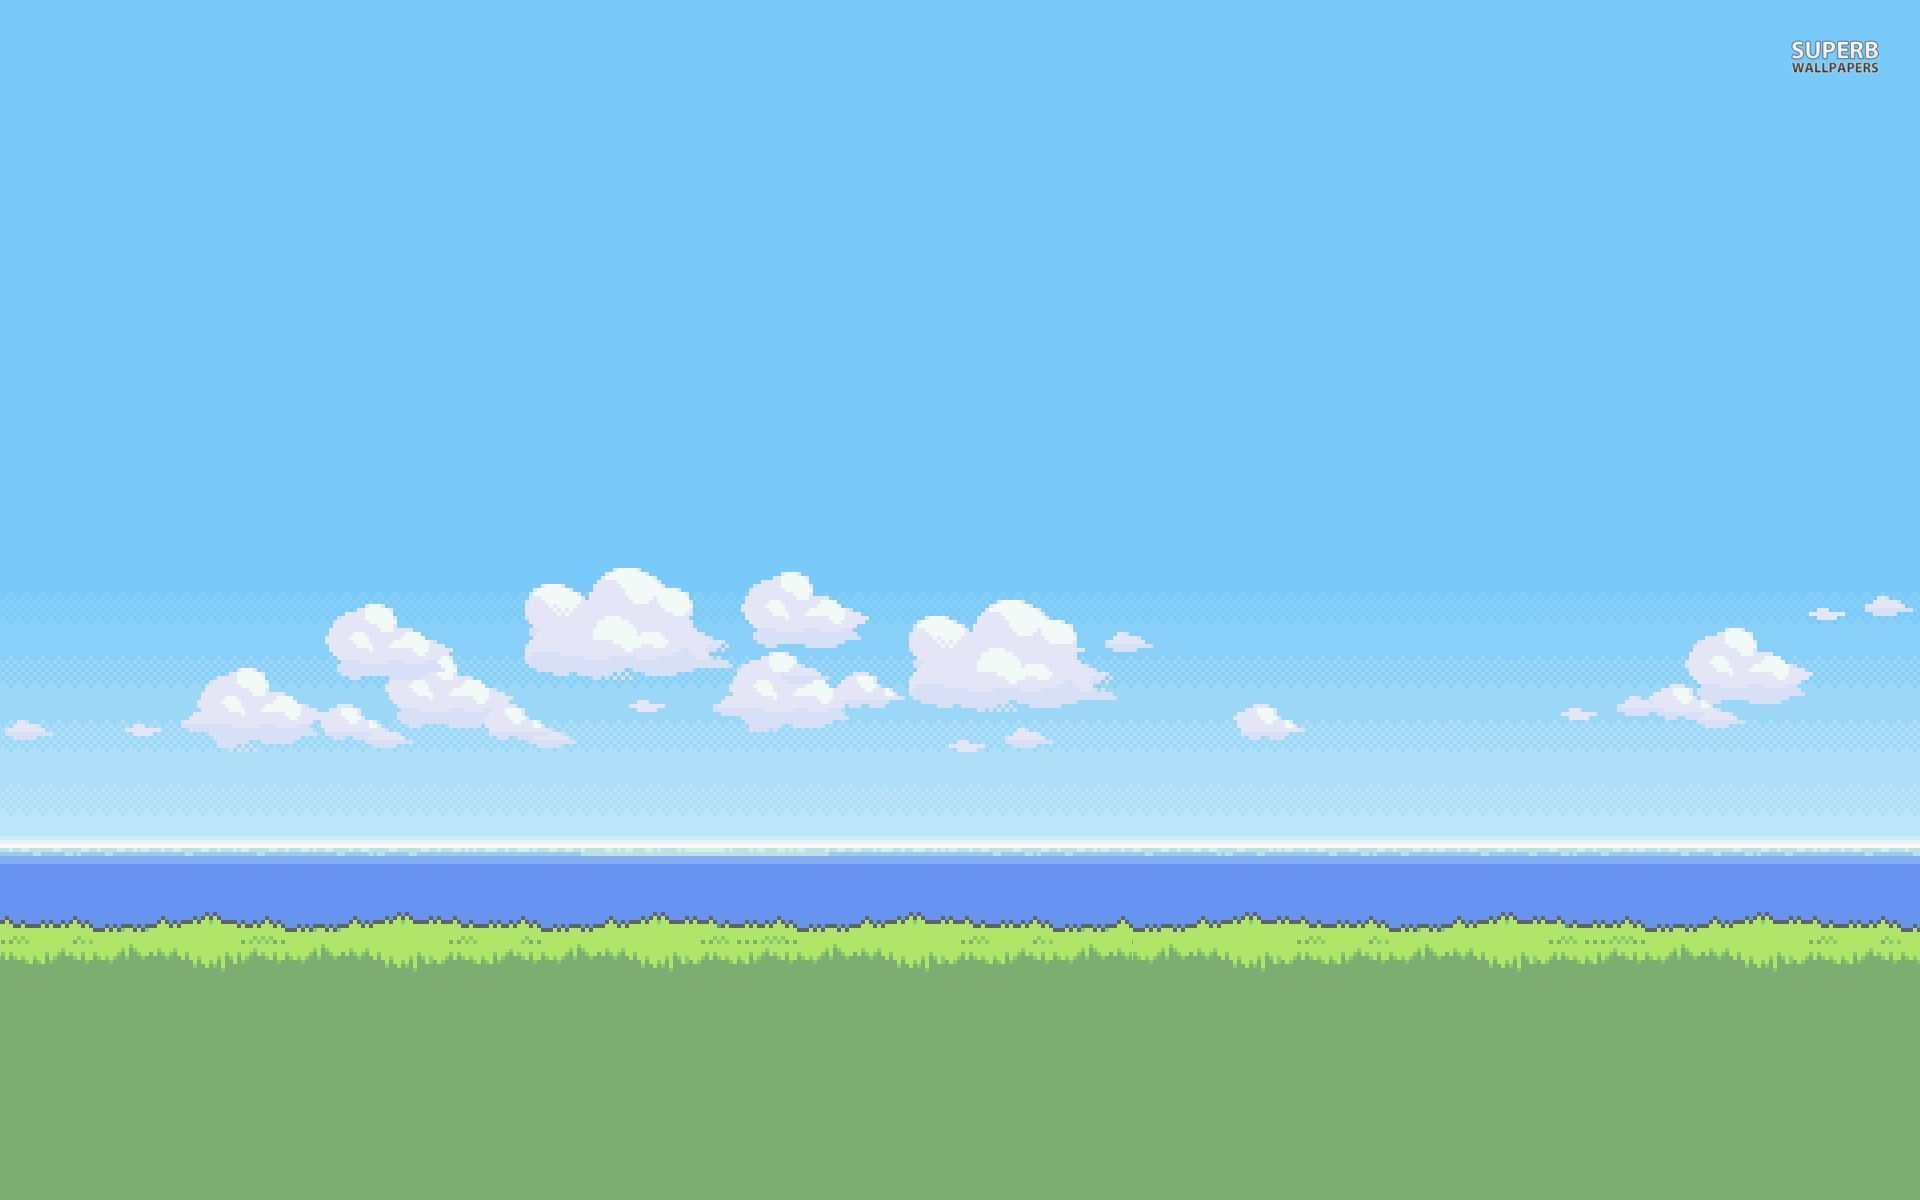 8 bit serene beach wallpaper 1920x1200